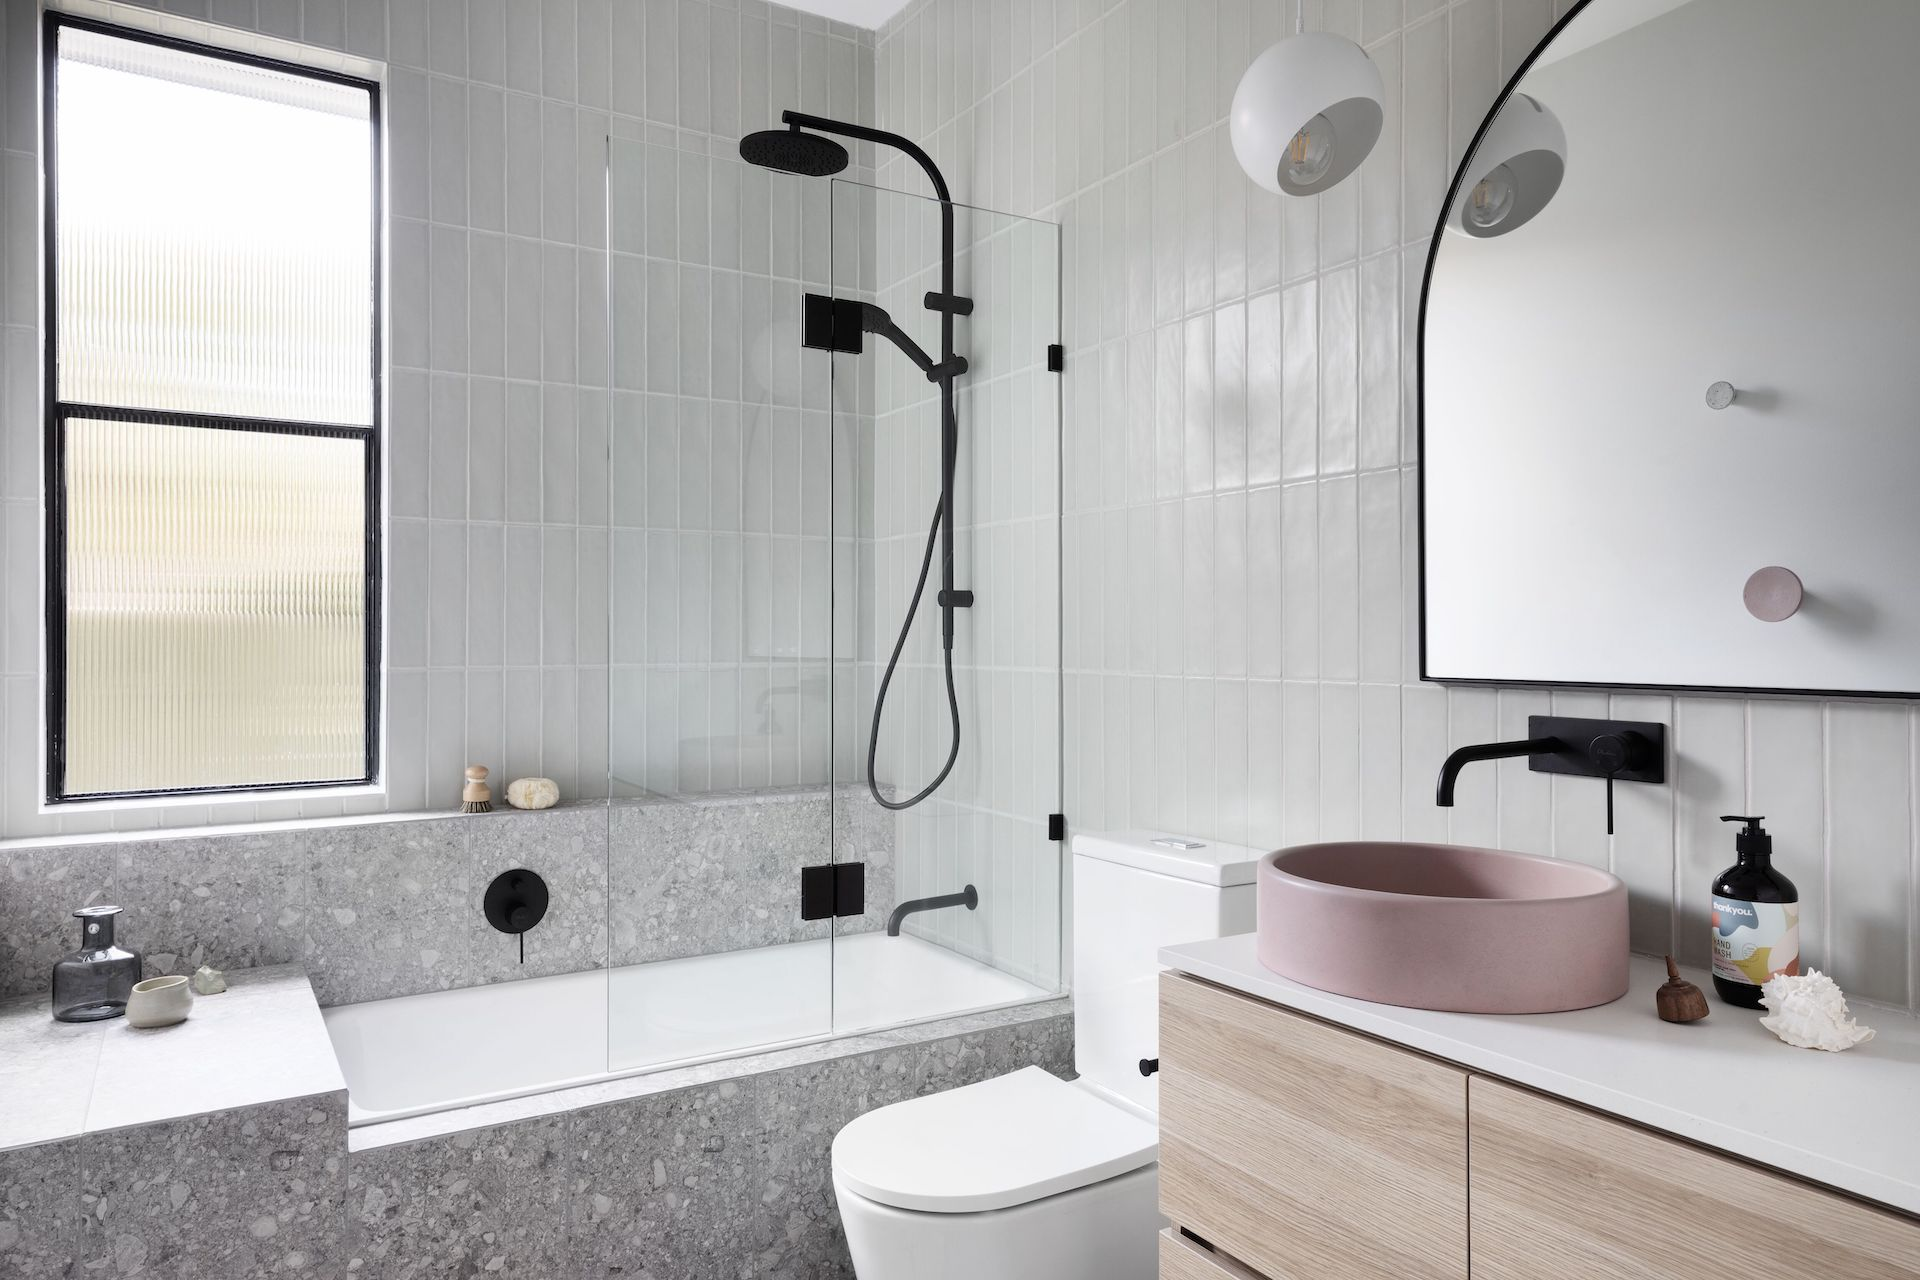 nood co round coloured bathroom basin in chic grey bathroom with black taps